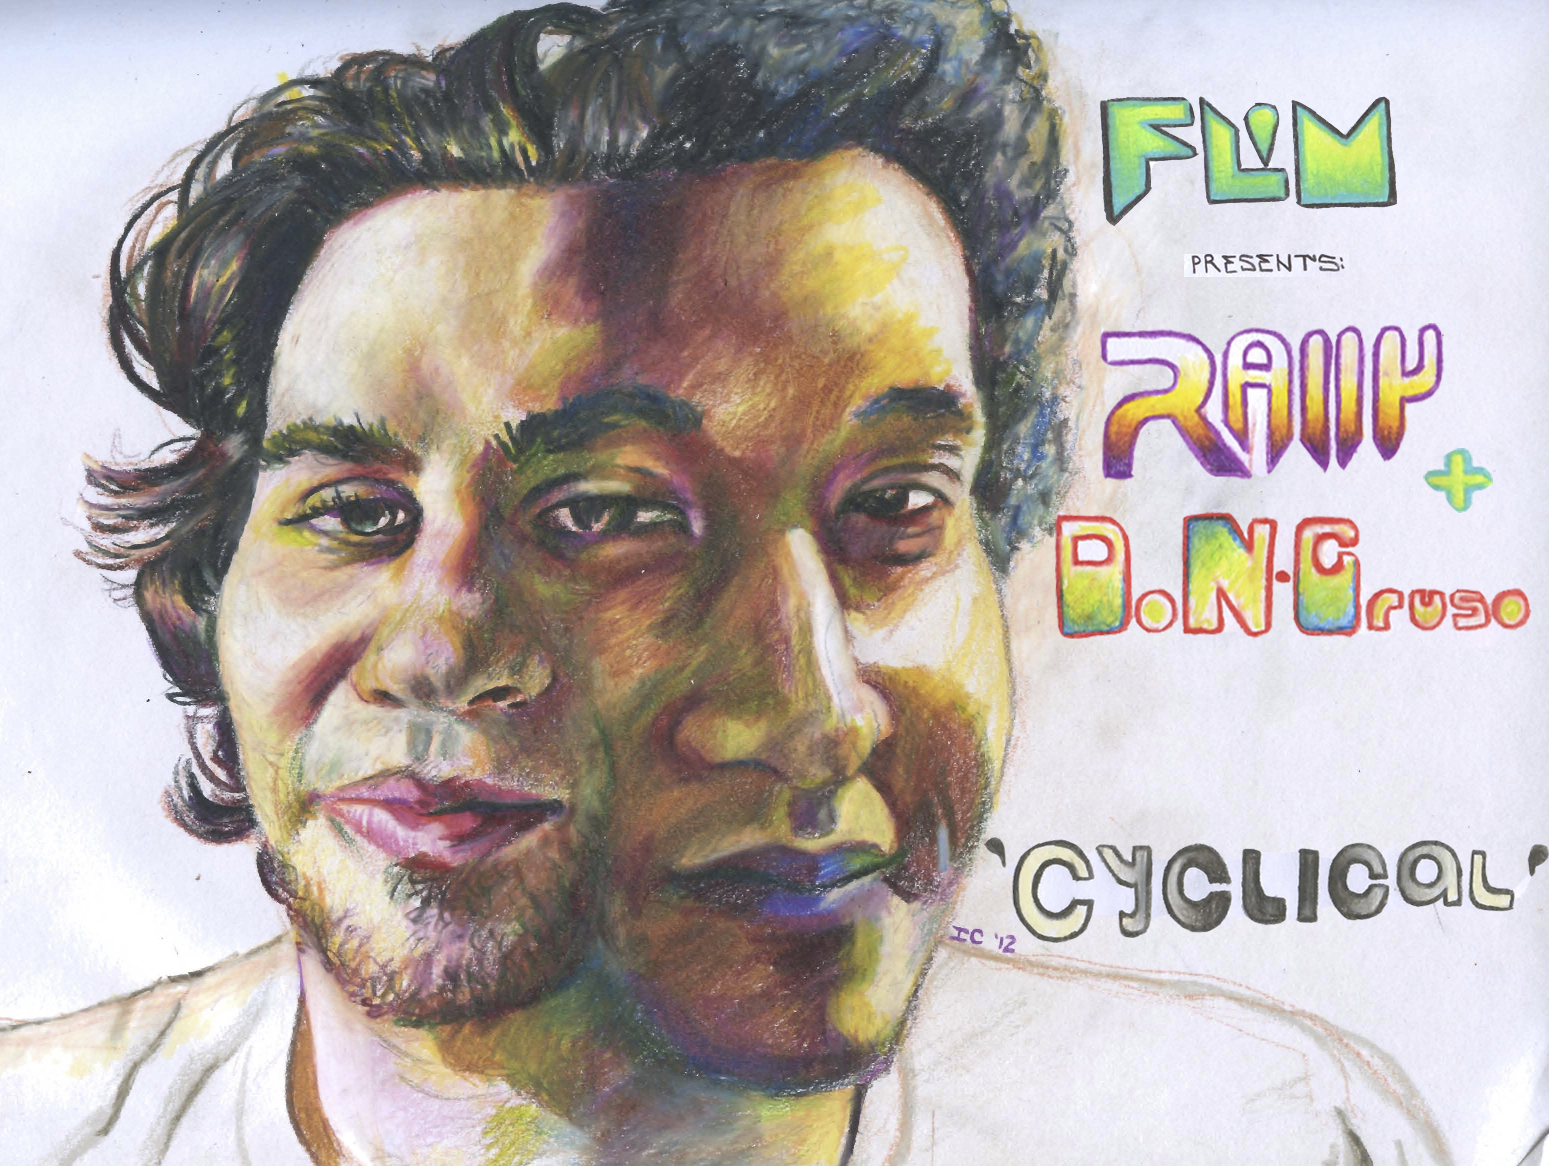 Free Download: The Flamingo's – Cyclical (2012)